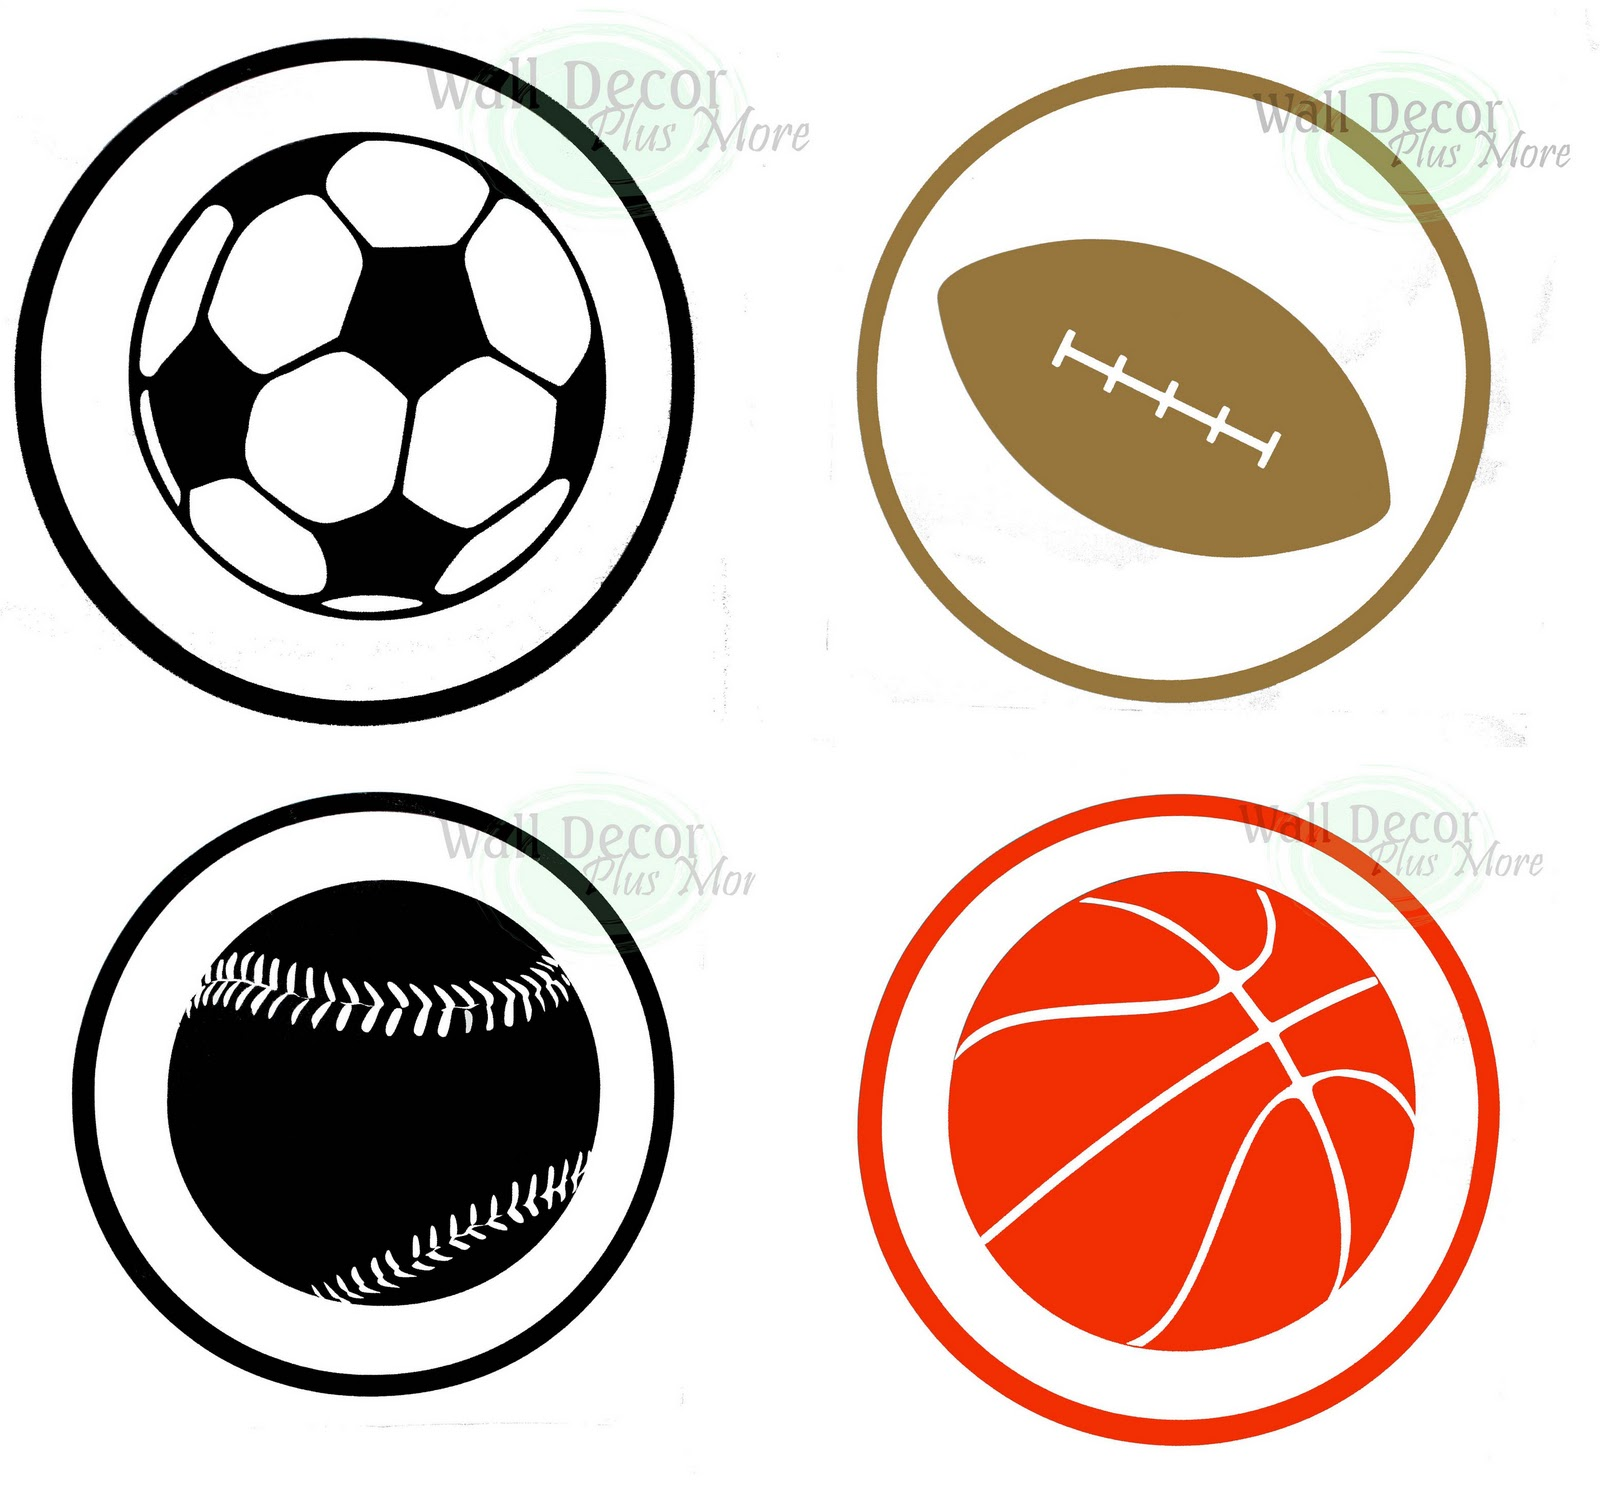 Decorating With Wall Vinyl Boy S Room Wall Decor Sports